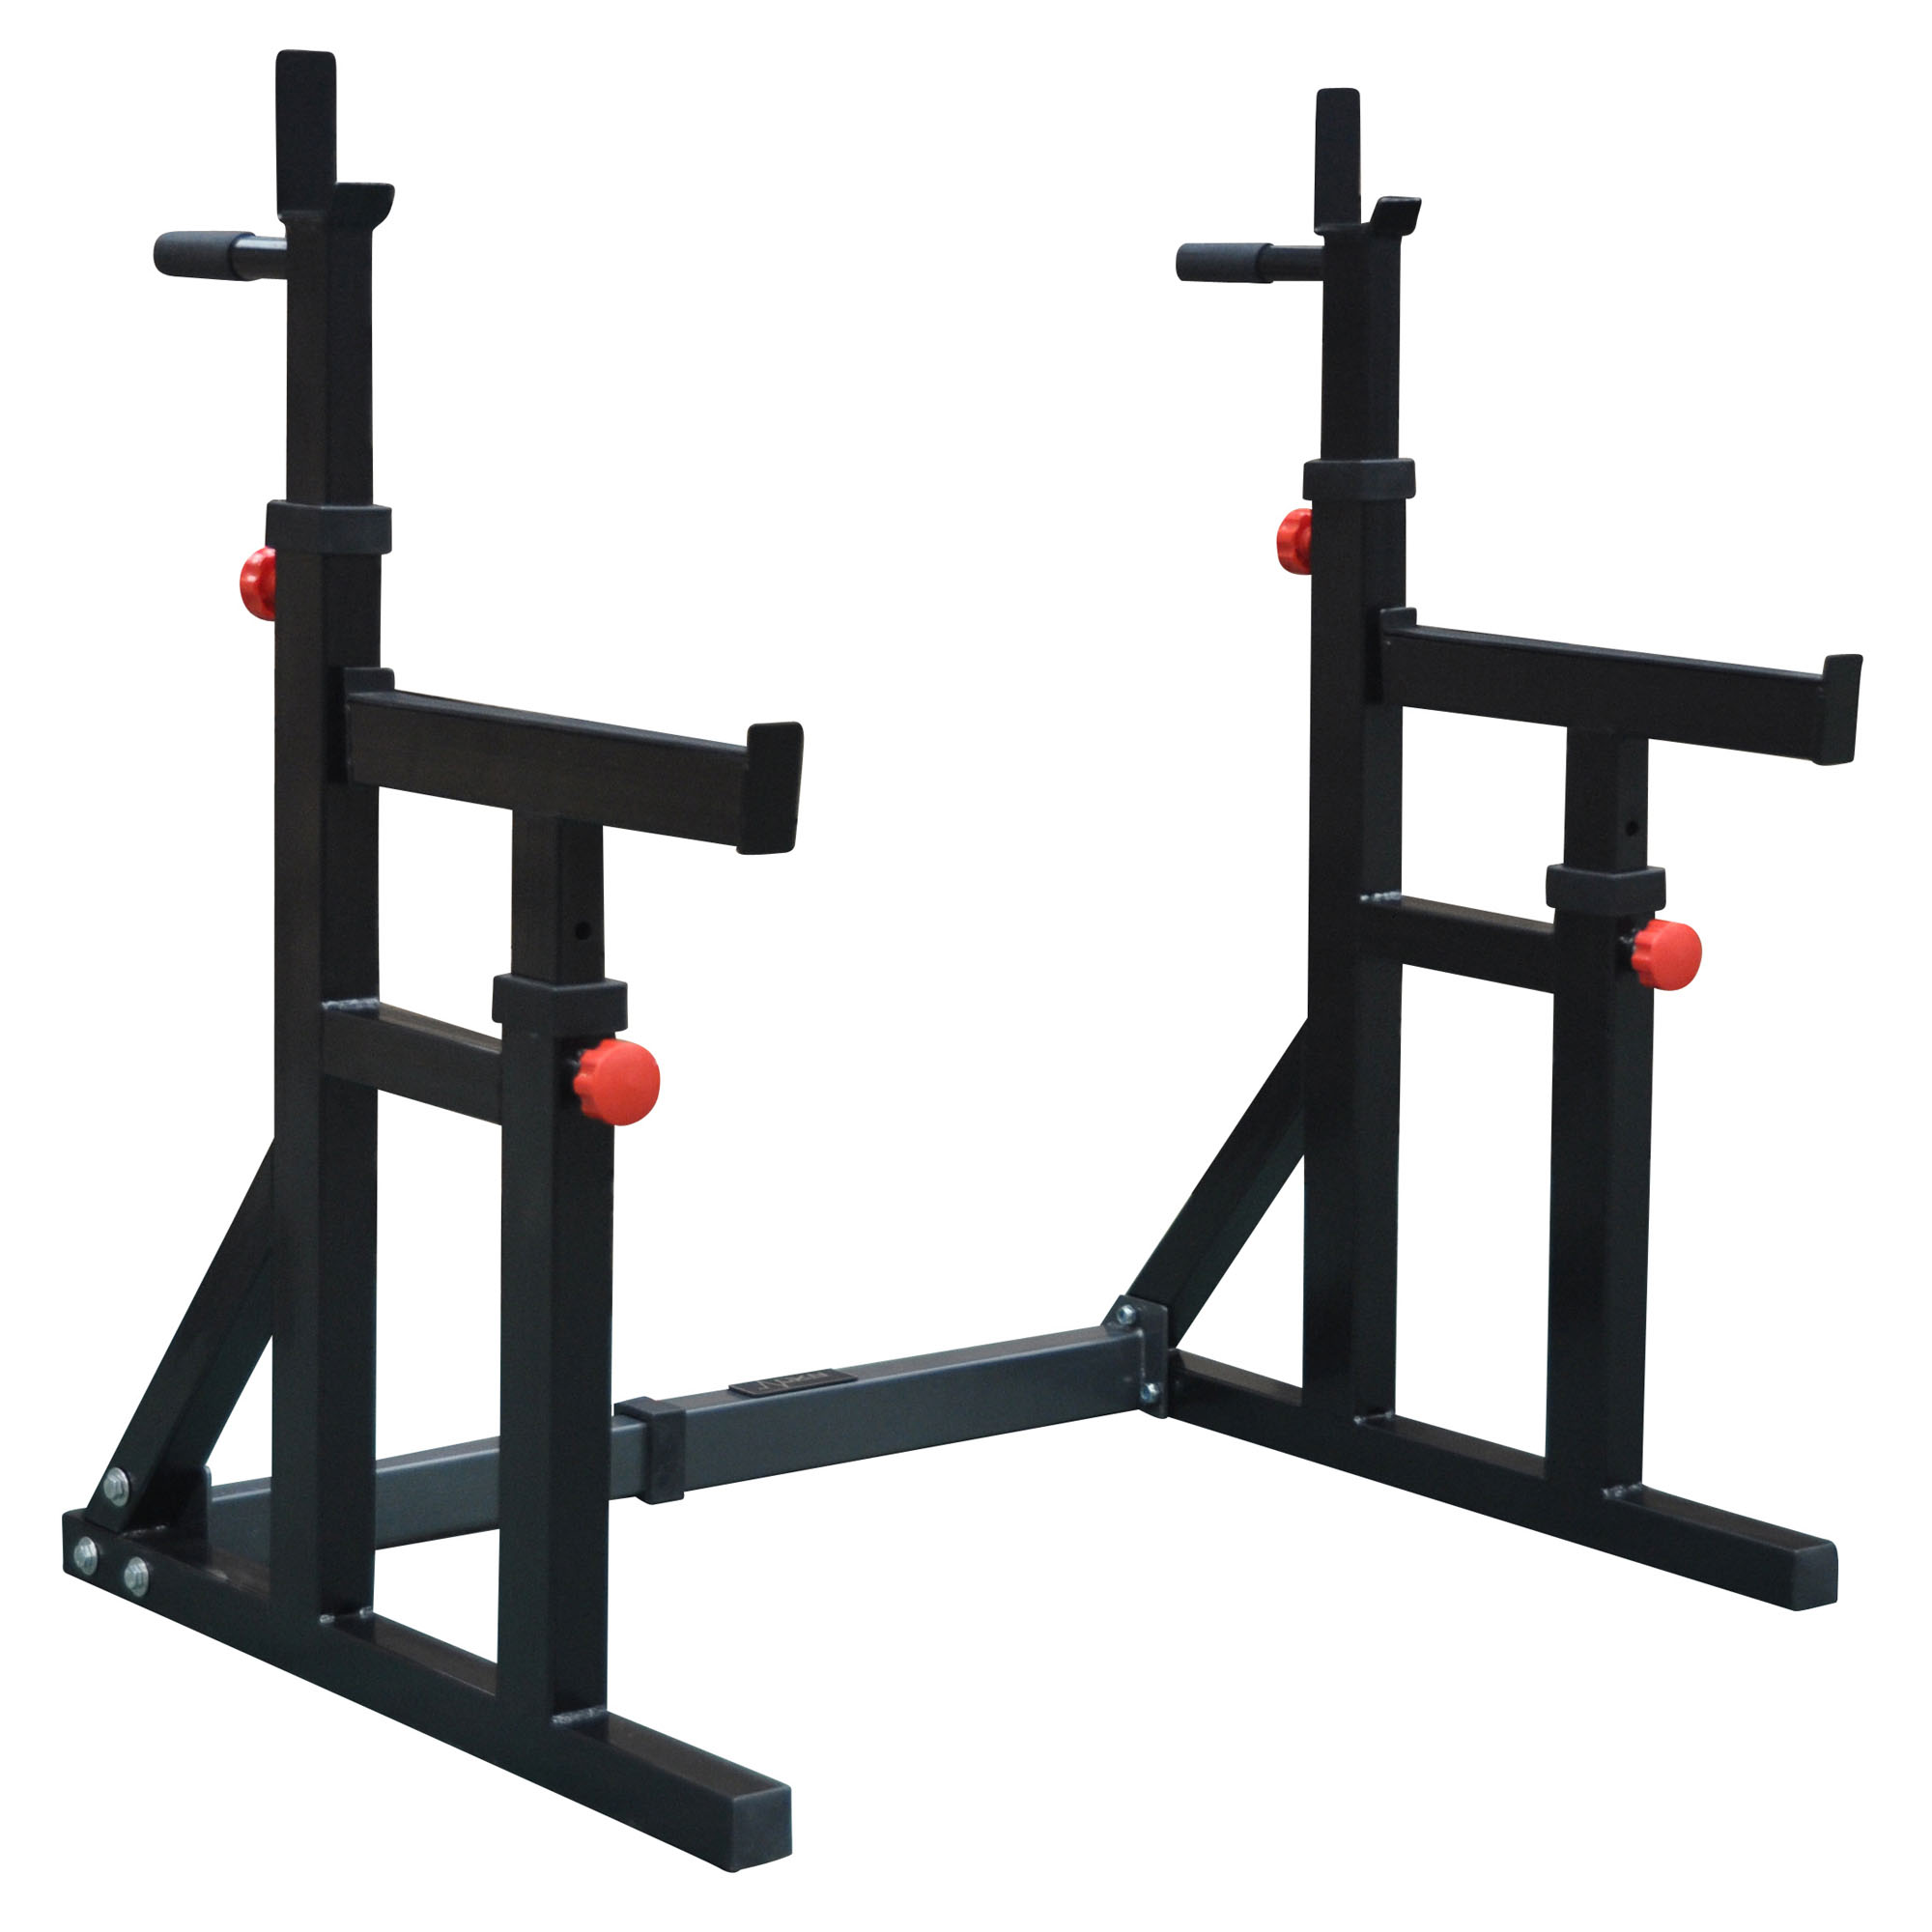 Buy Cheap Squat Rack Compare Fitness Prices For Best Uk